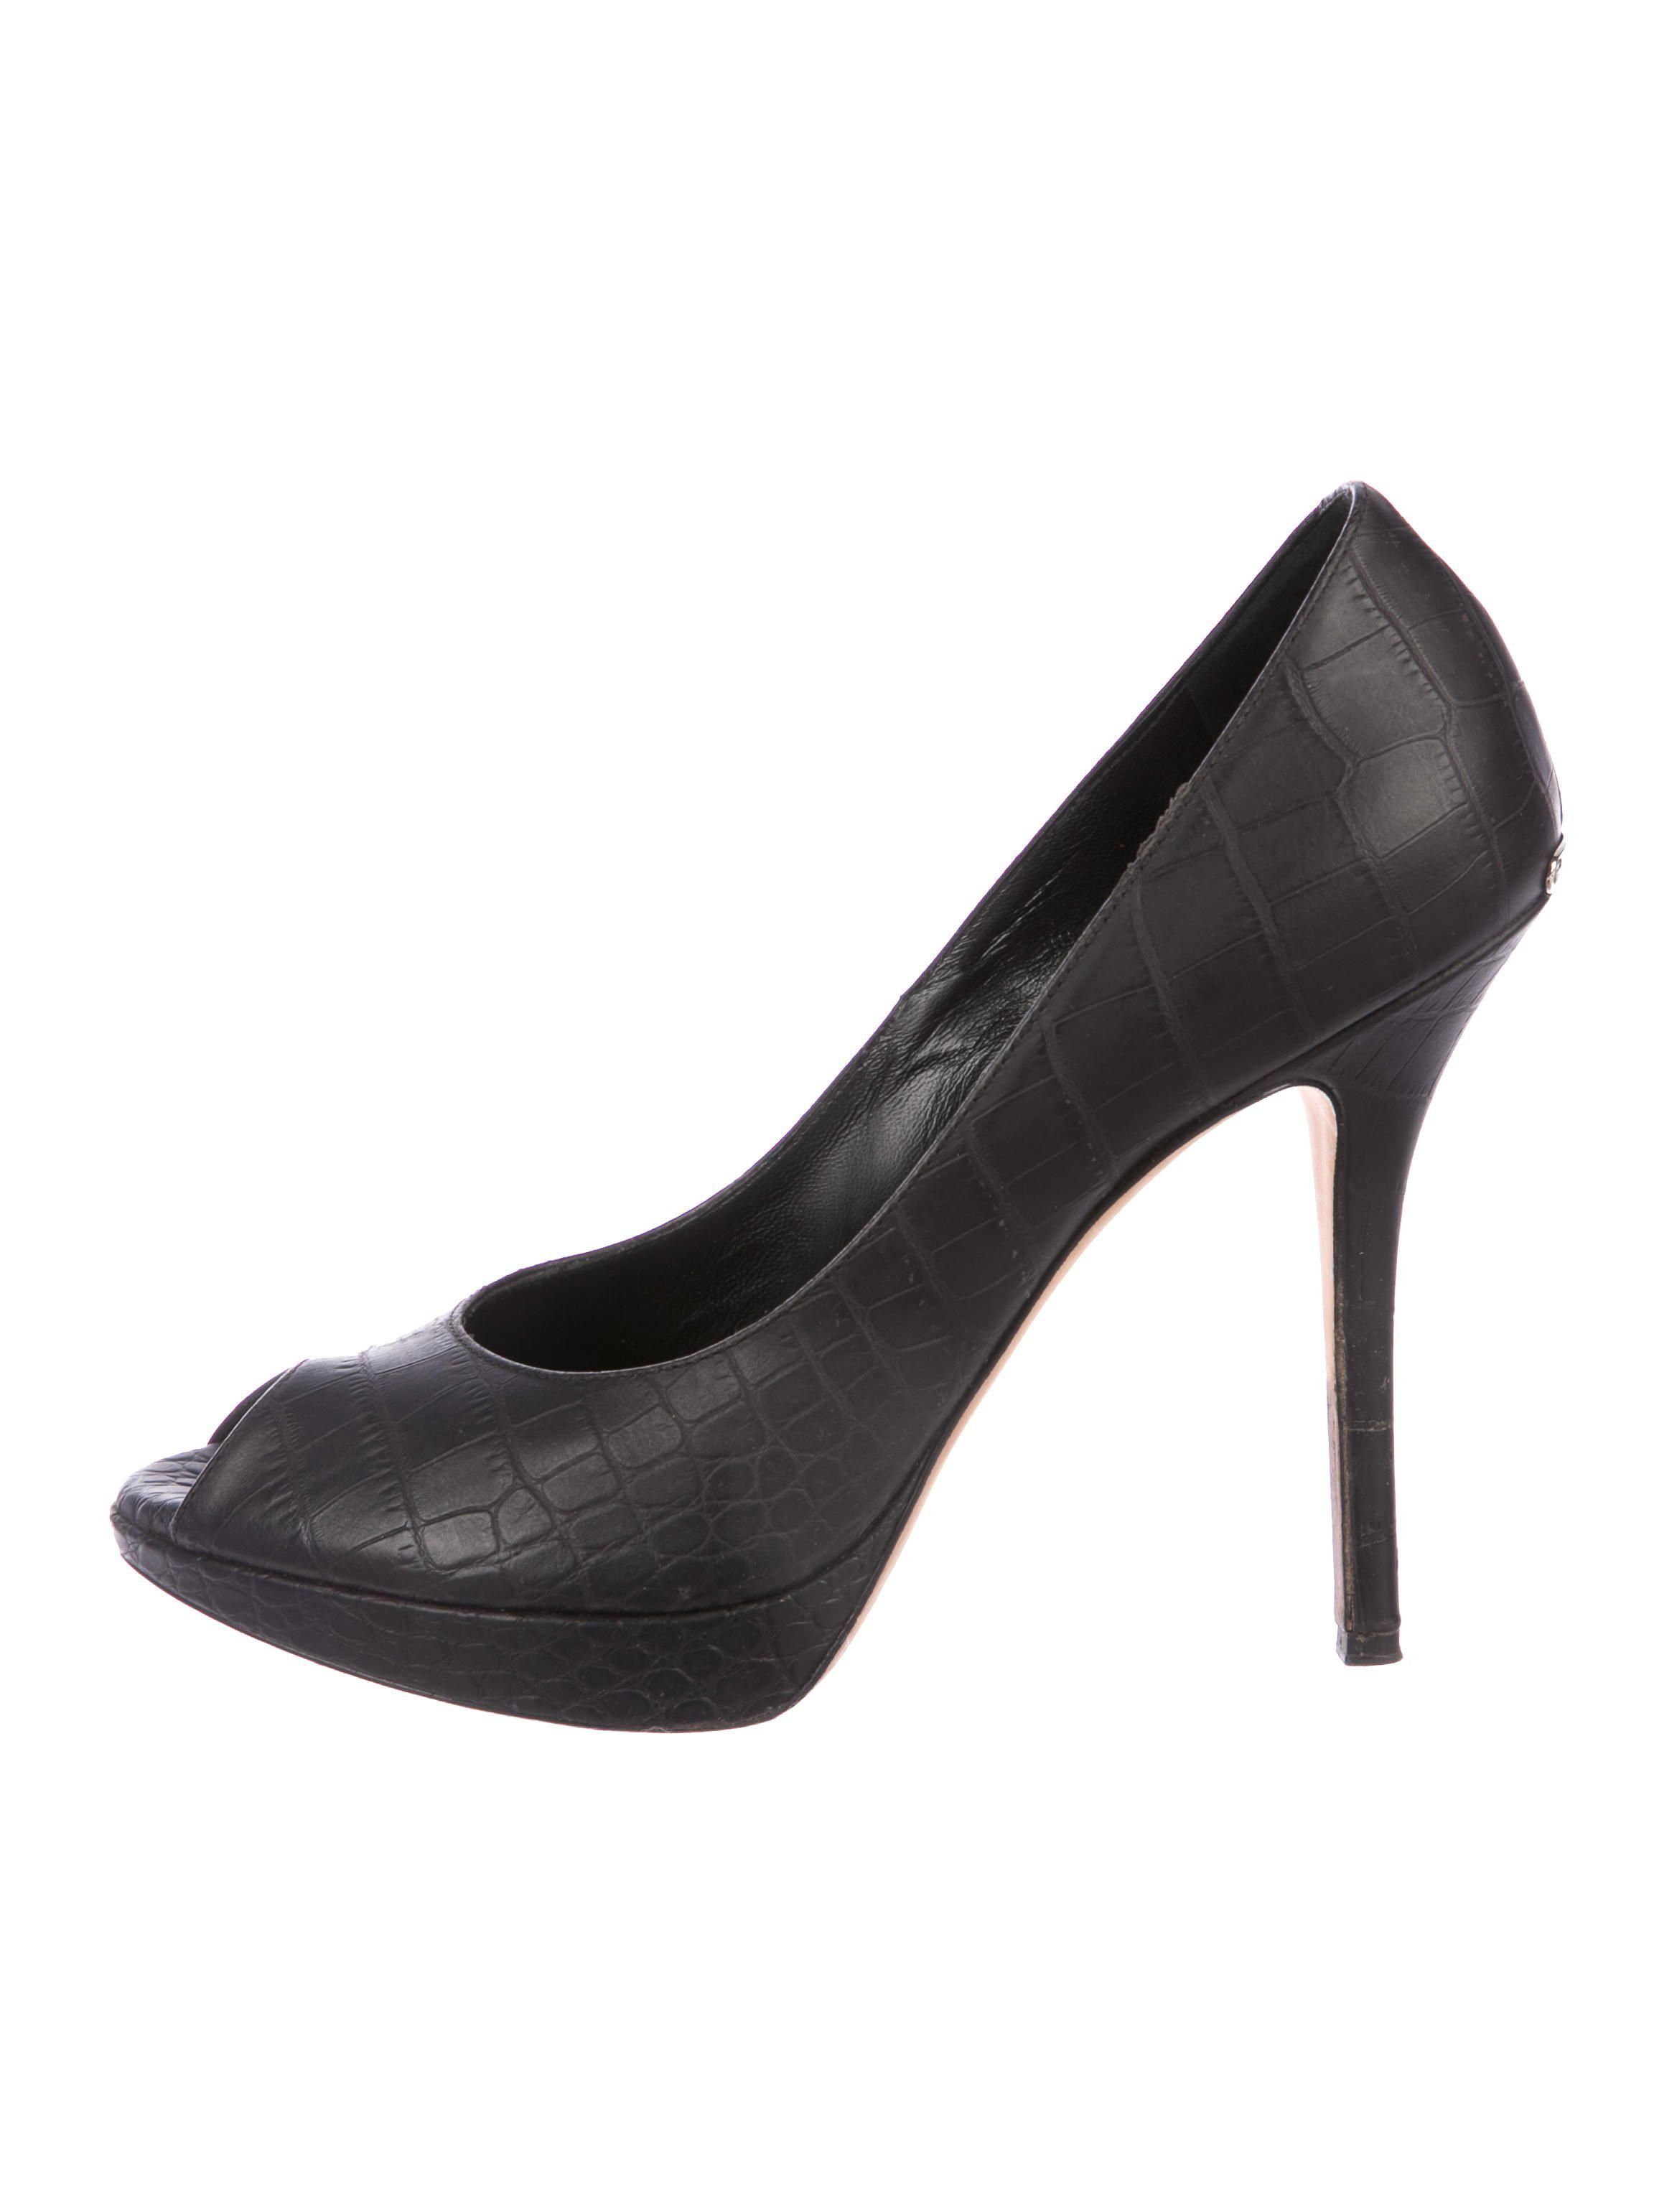 affordable sale online Christian Dior Embossed Leather Peep-Toe Pumps best wholesale cheap price xyUBH8v